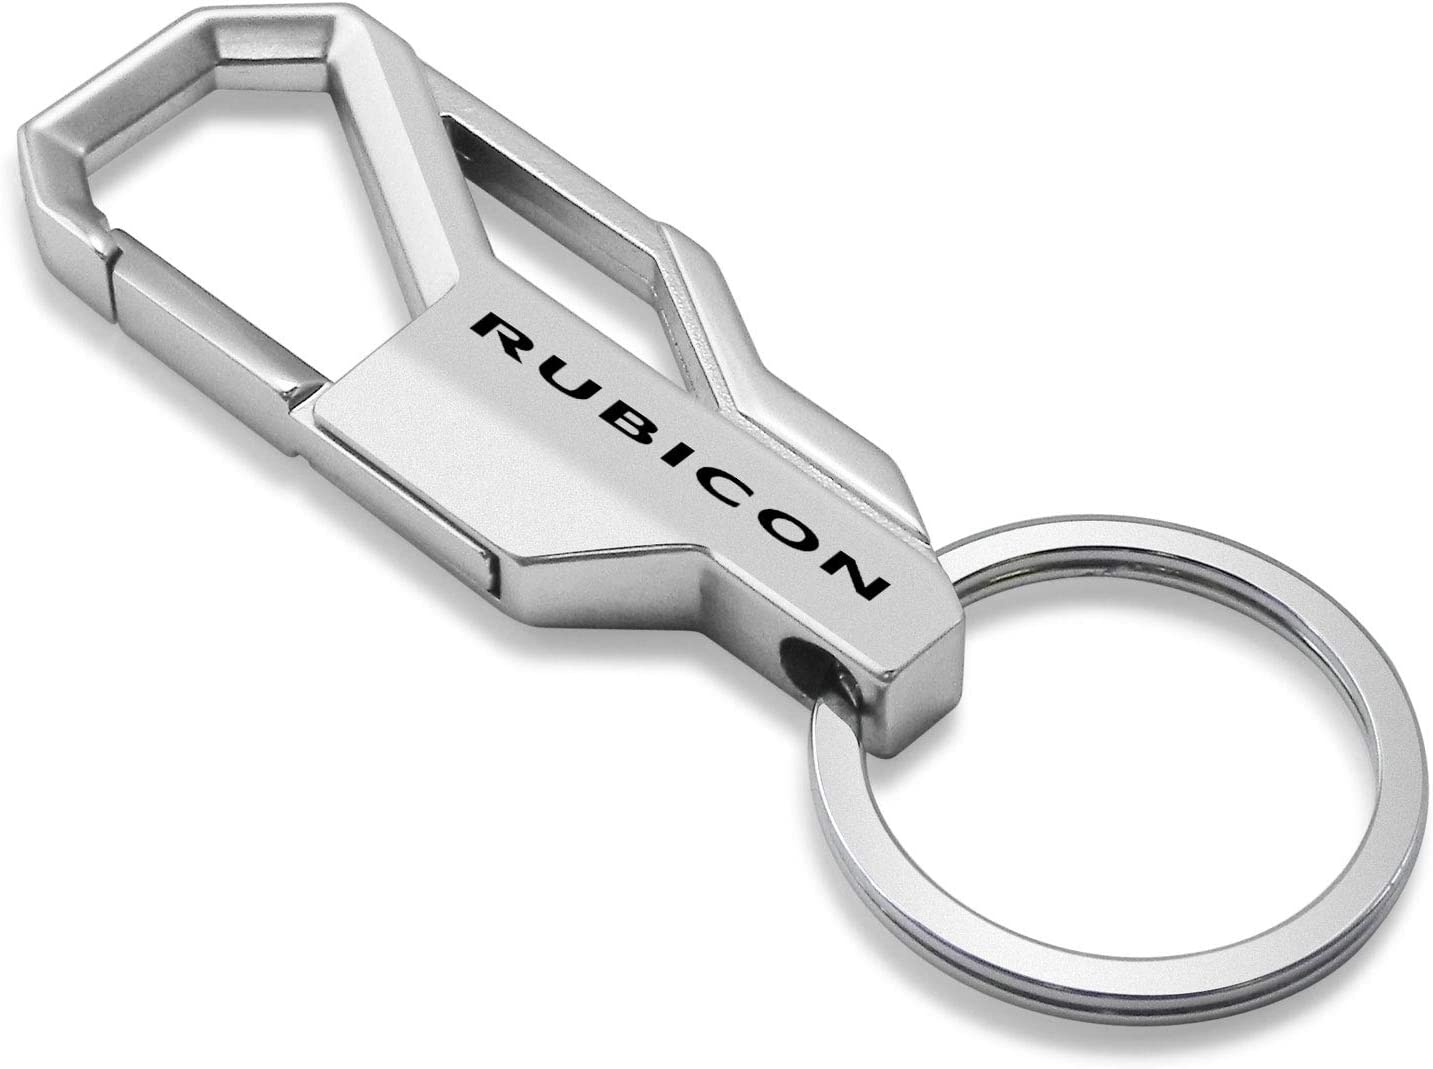 Jeep Rubicon Wrangler Silver Snap Hook Metal Key Chain iPick Image for